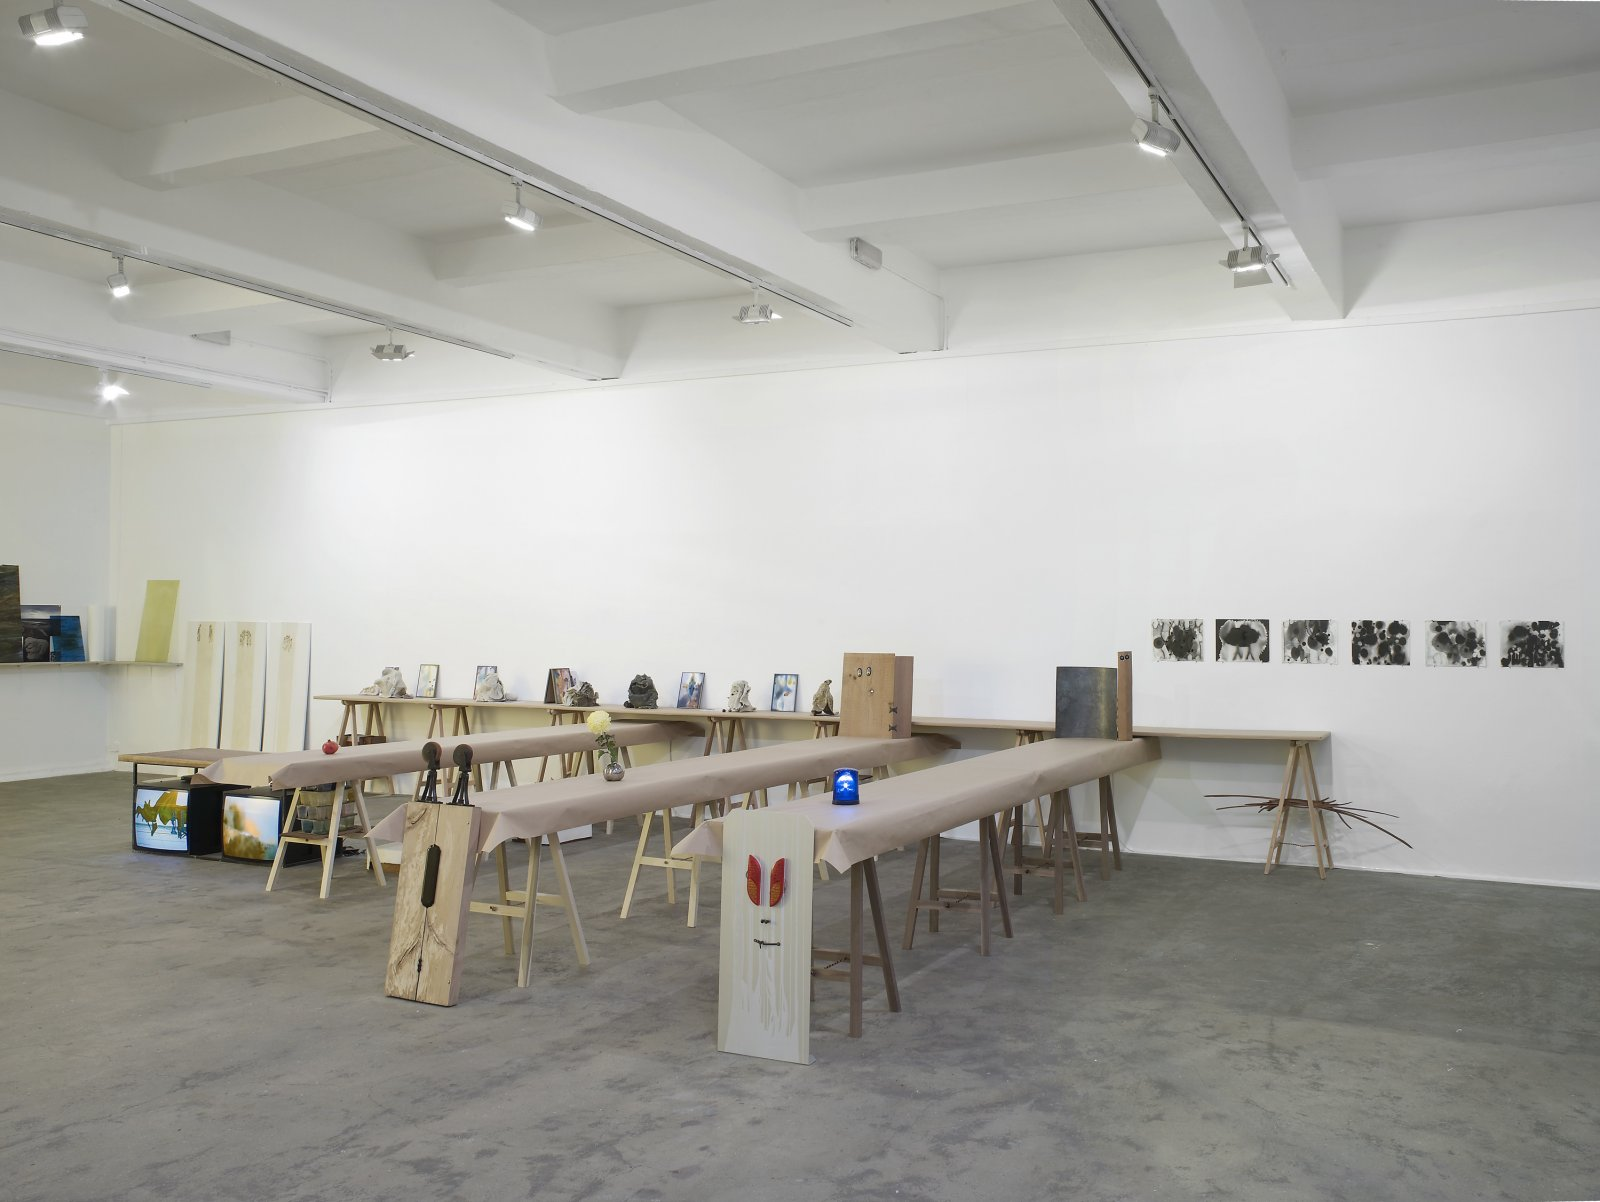 Christina Mackie, installation view, Painting the Weights, Chisenhale Gallery, London, UK, 2012 by Christina Mackie